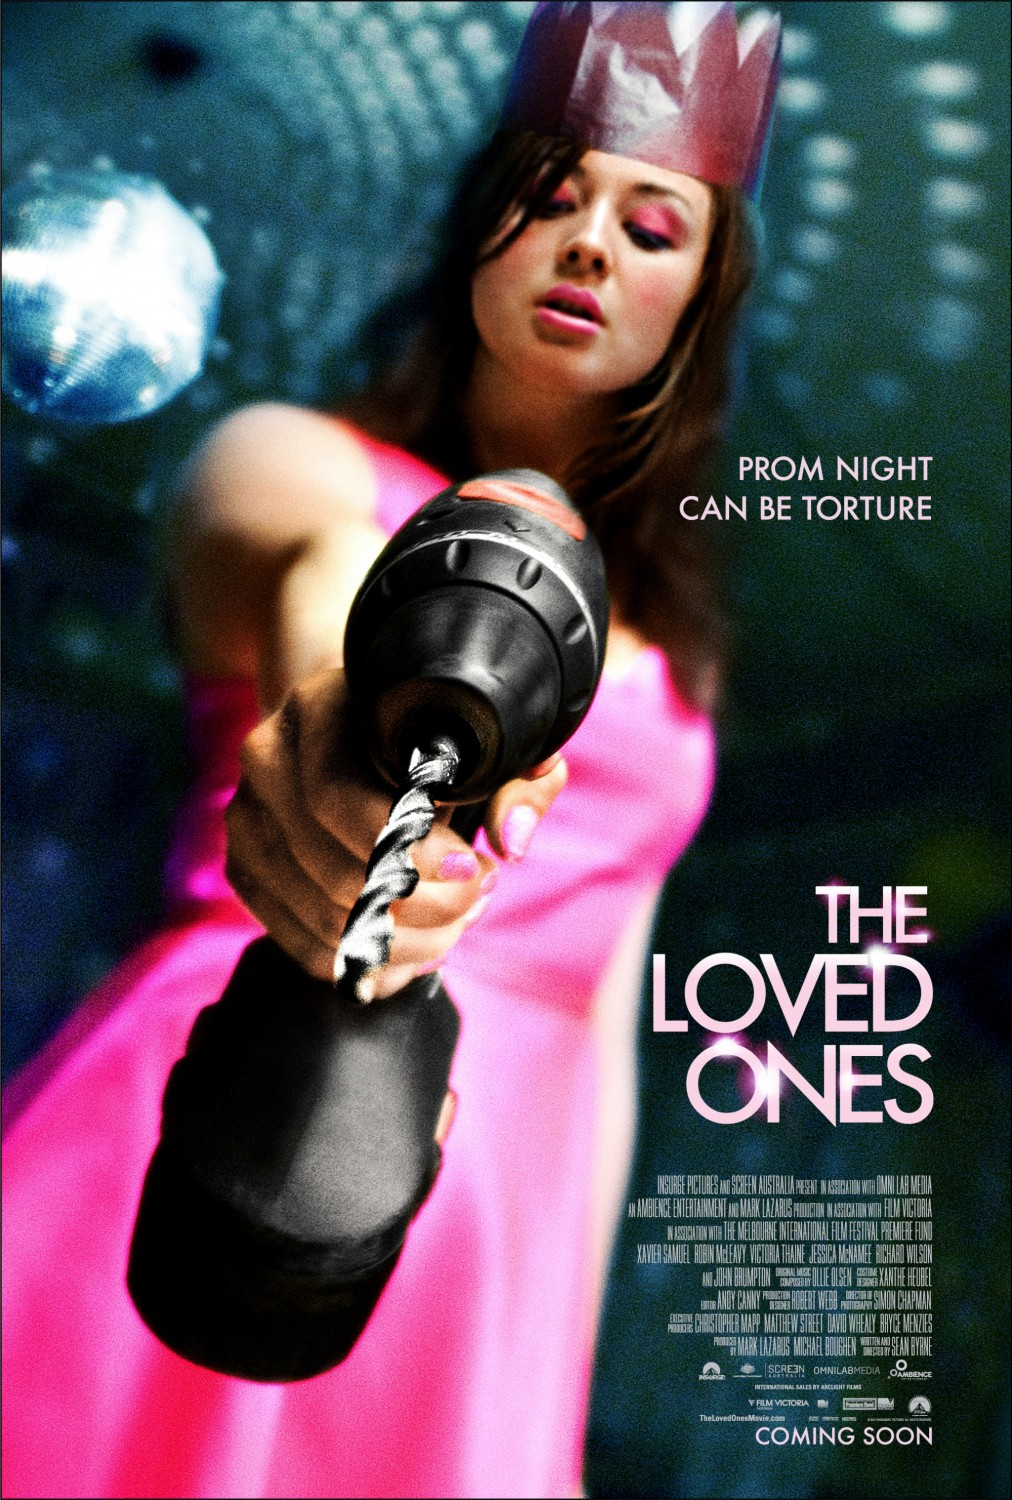 The Loved Ones - US poster